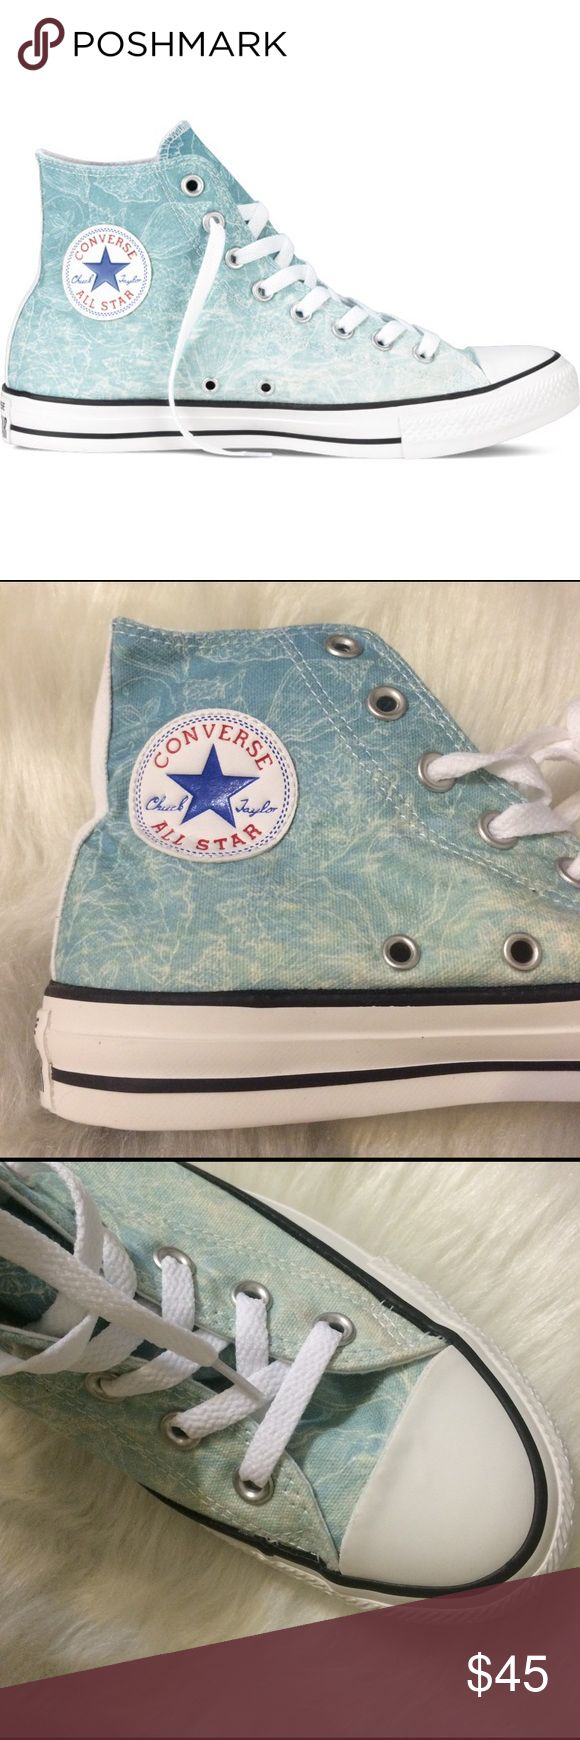 CONVERSE WOMENS BLUE WHITE SIZE 7 SHOES HI TOPS Brand new Converse Shoes Sneakers